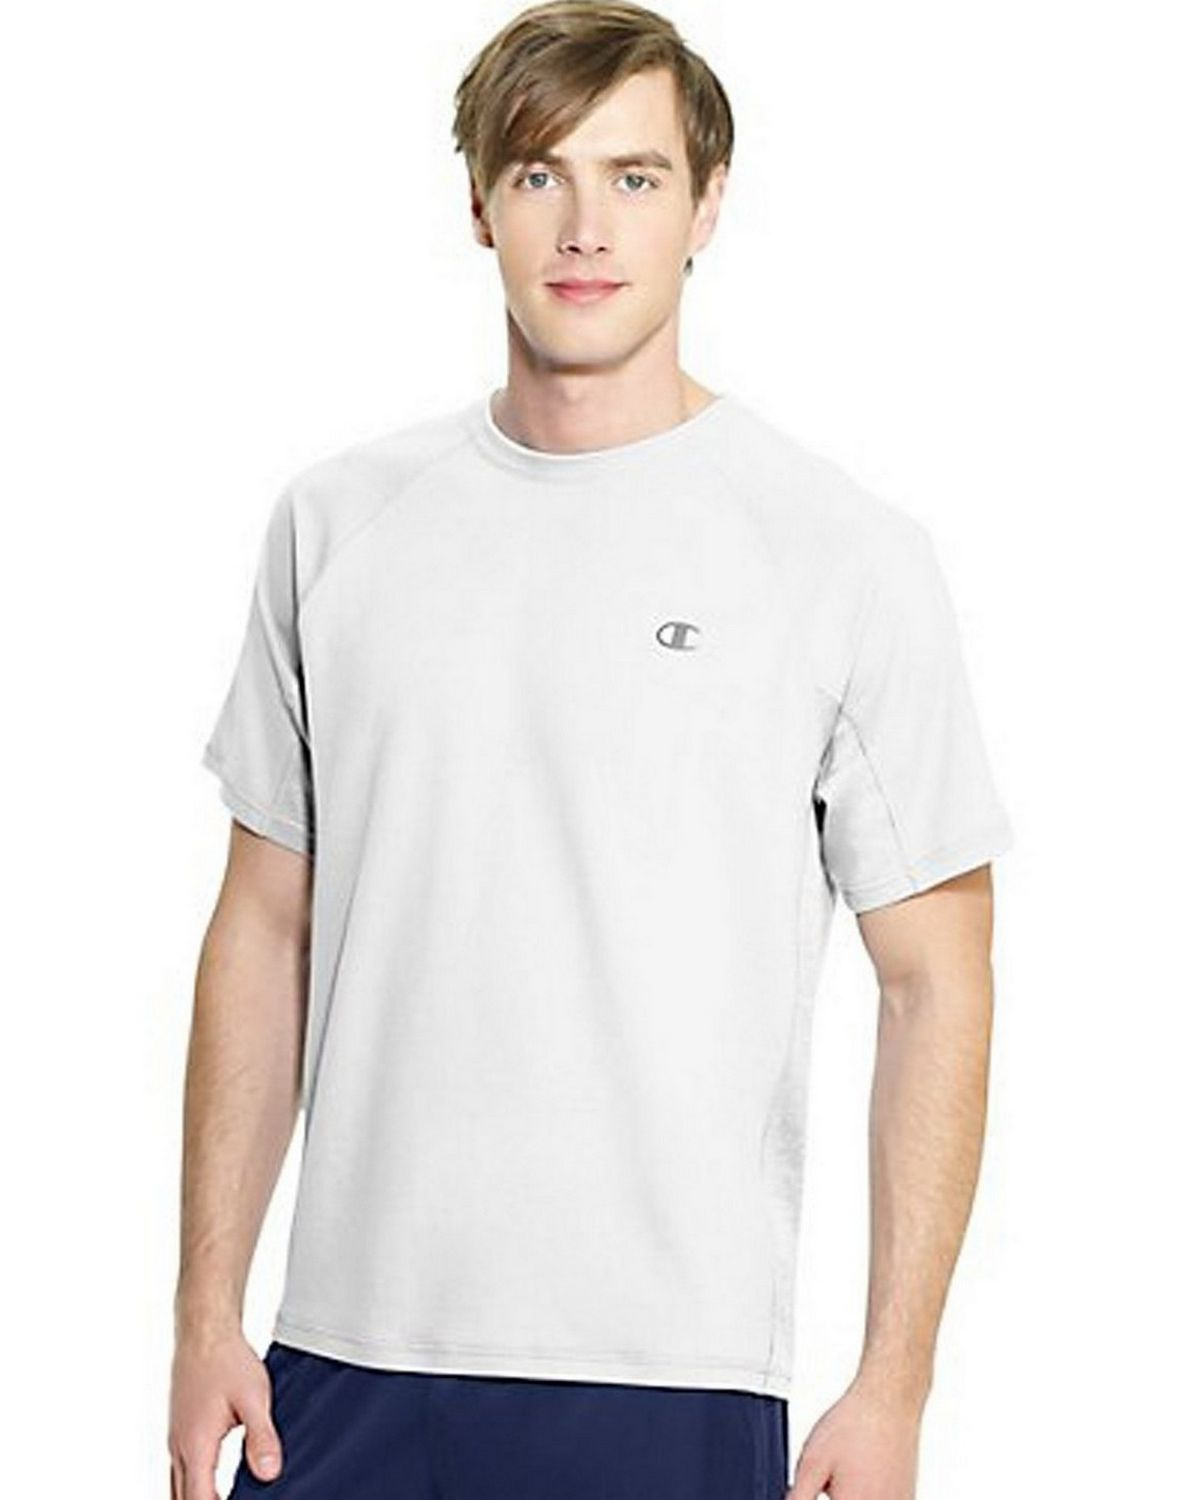 Champion T6608 Vapor PowerTrain Colorblock Tee - White - XL T6608